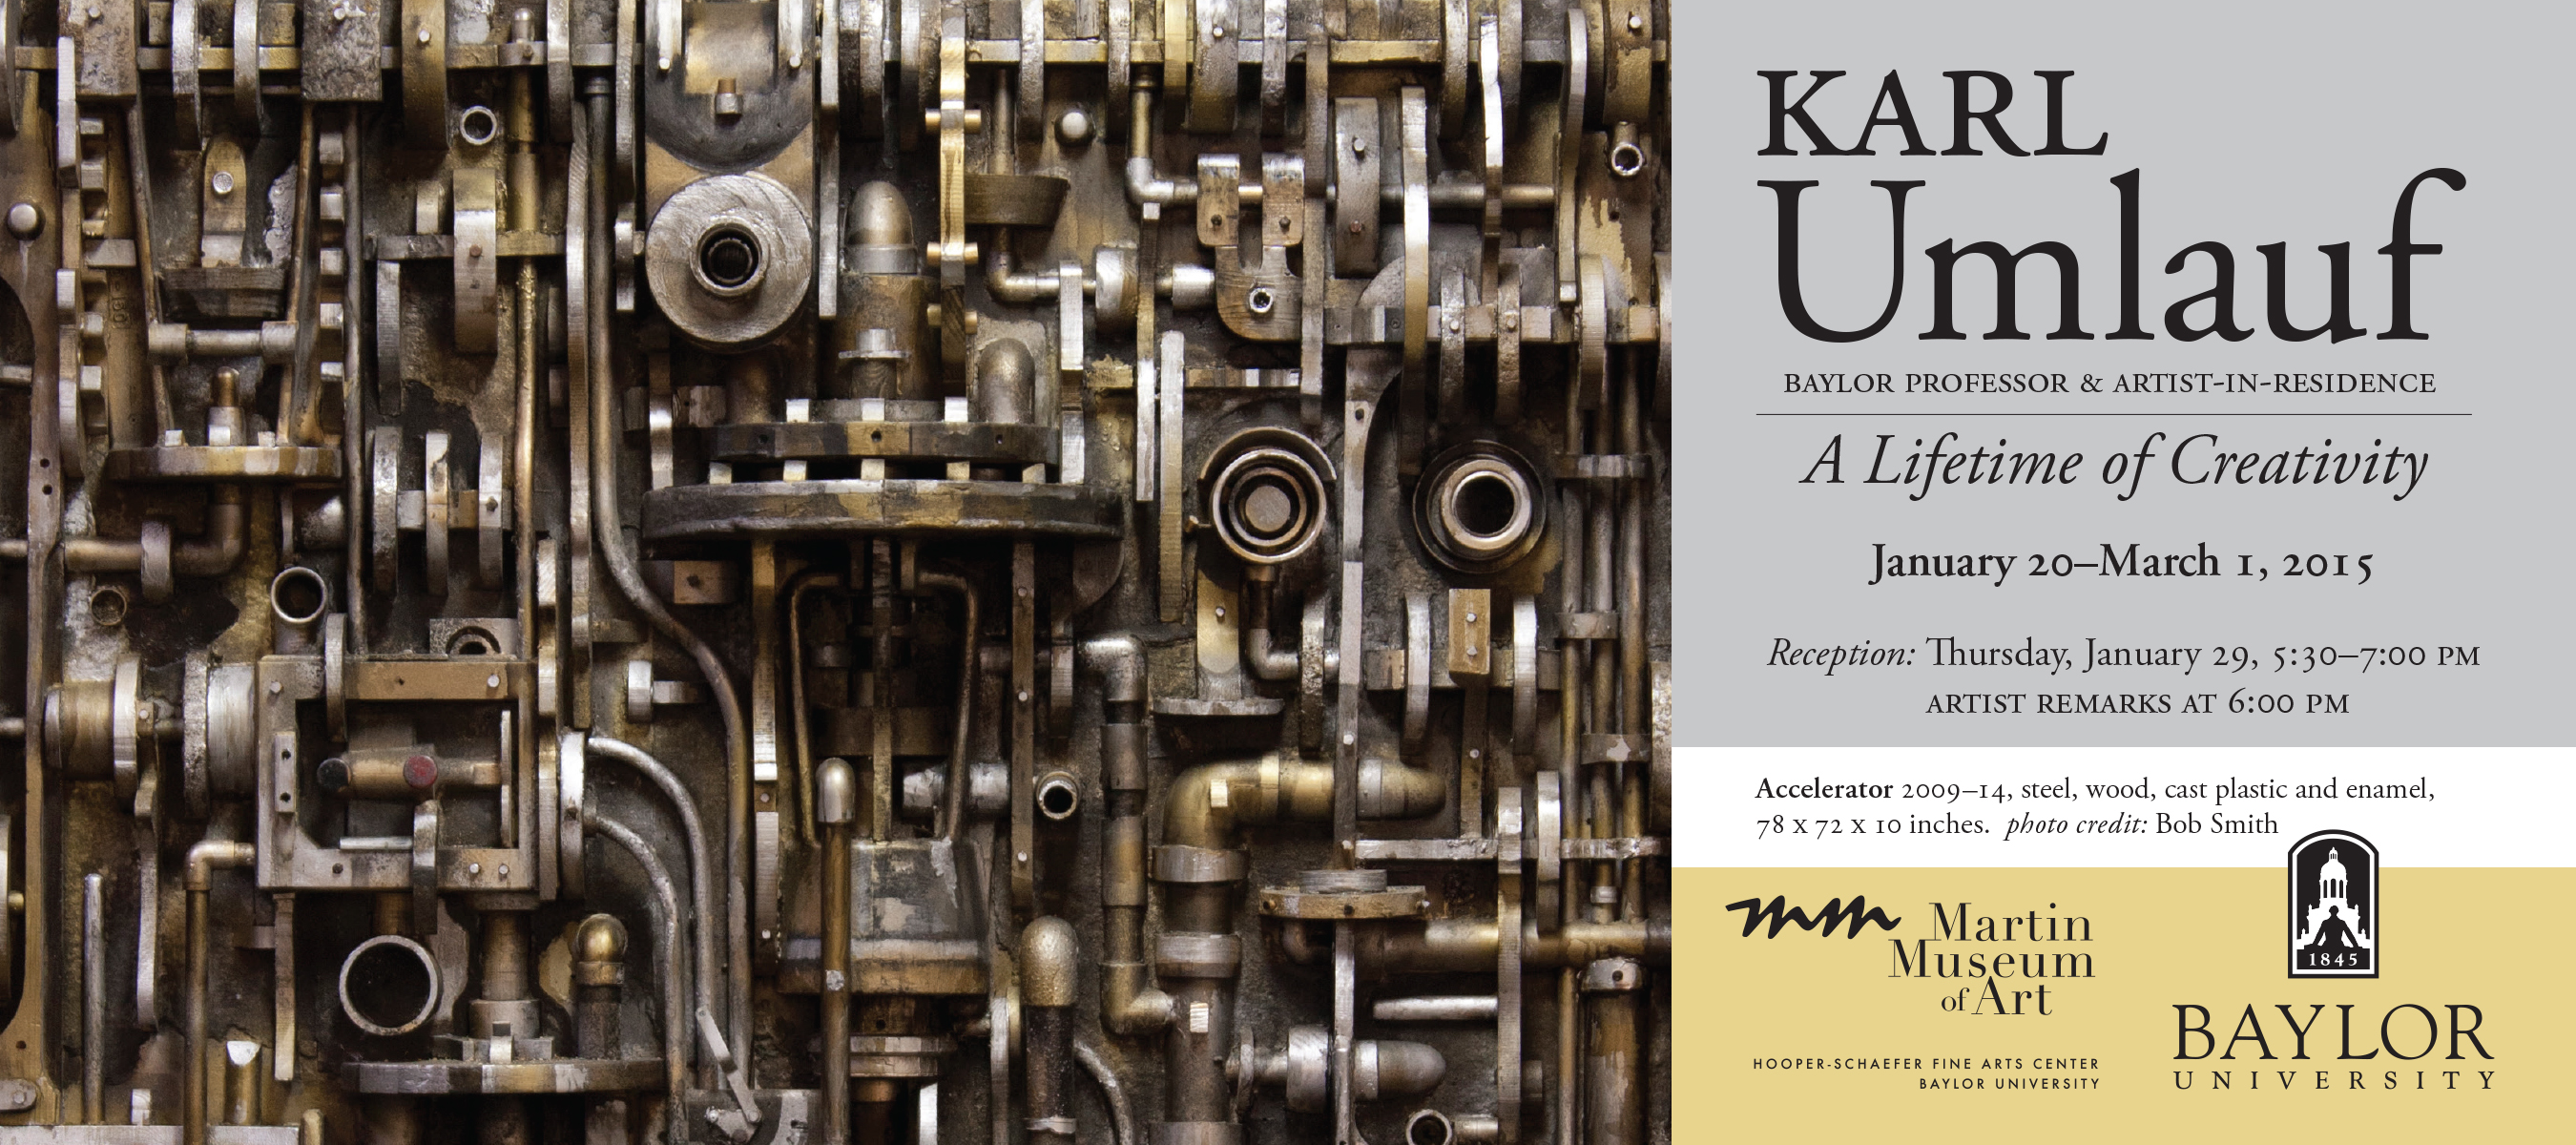 Karl Umlauf Exhibition Card, Spring 2015